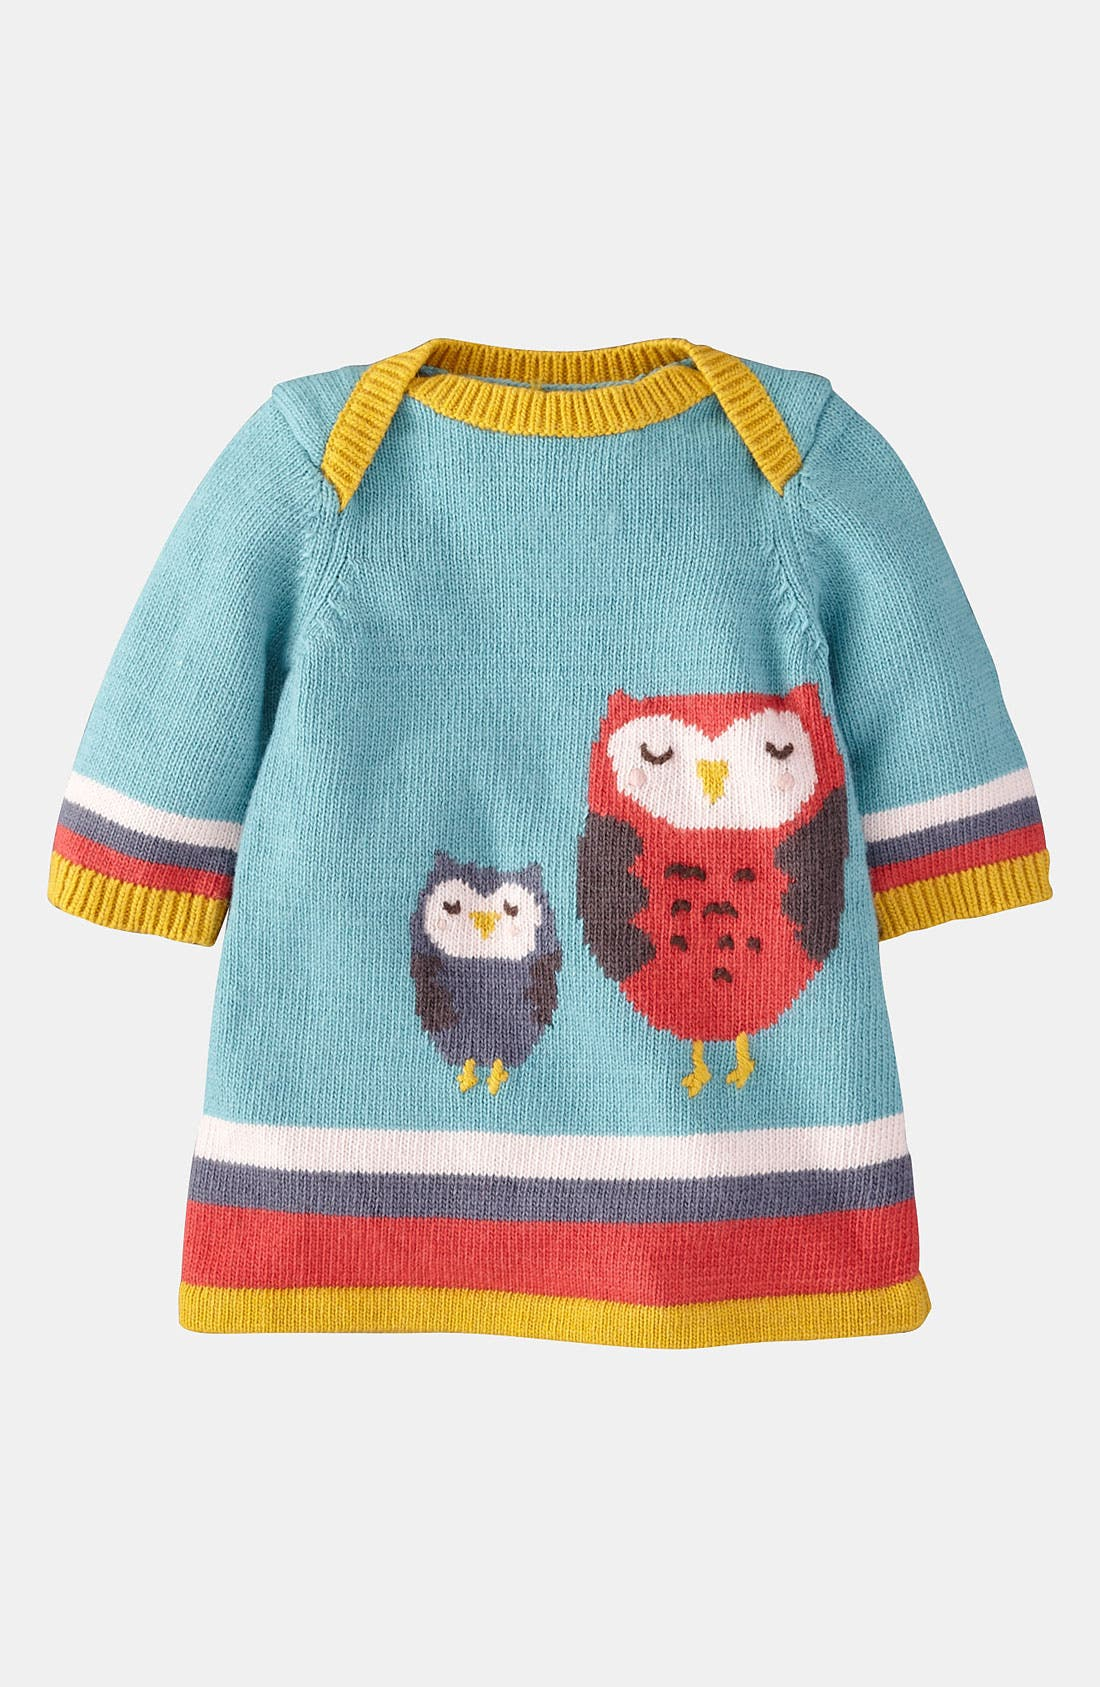 Main Image - Mini Boden 'My Baby' Knit Dress (Infant)